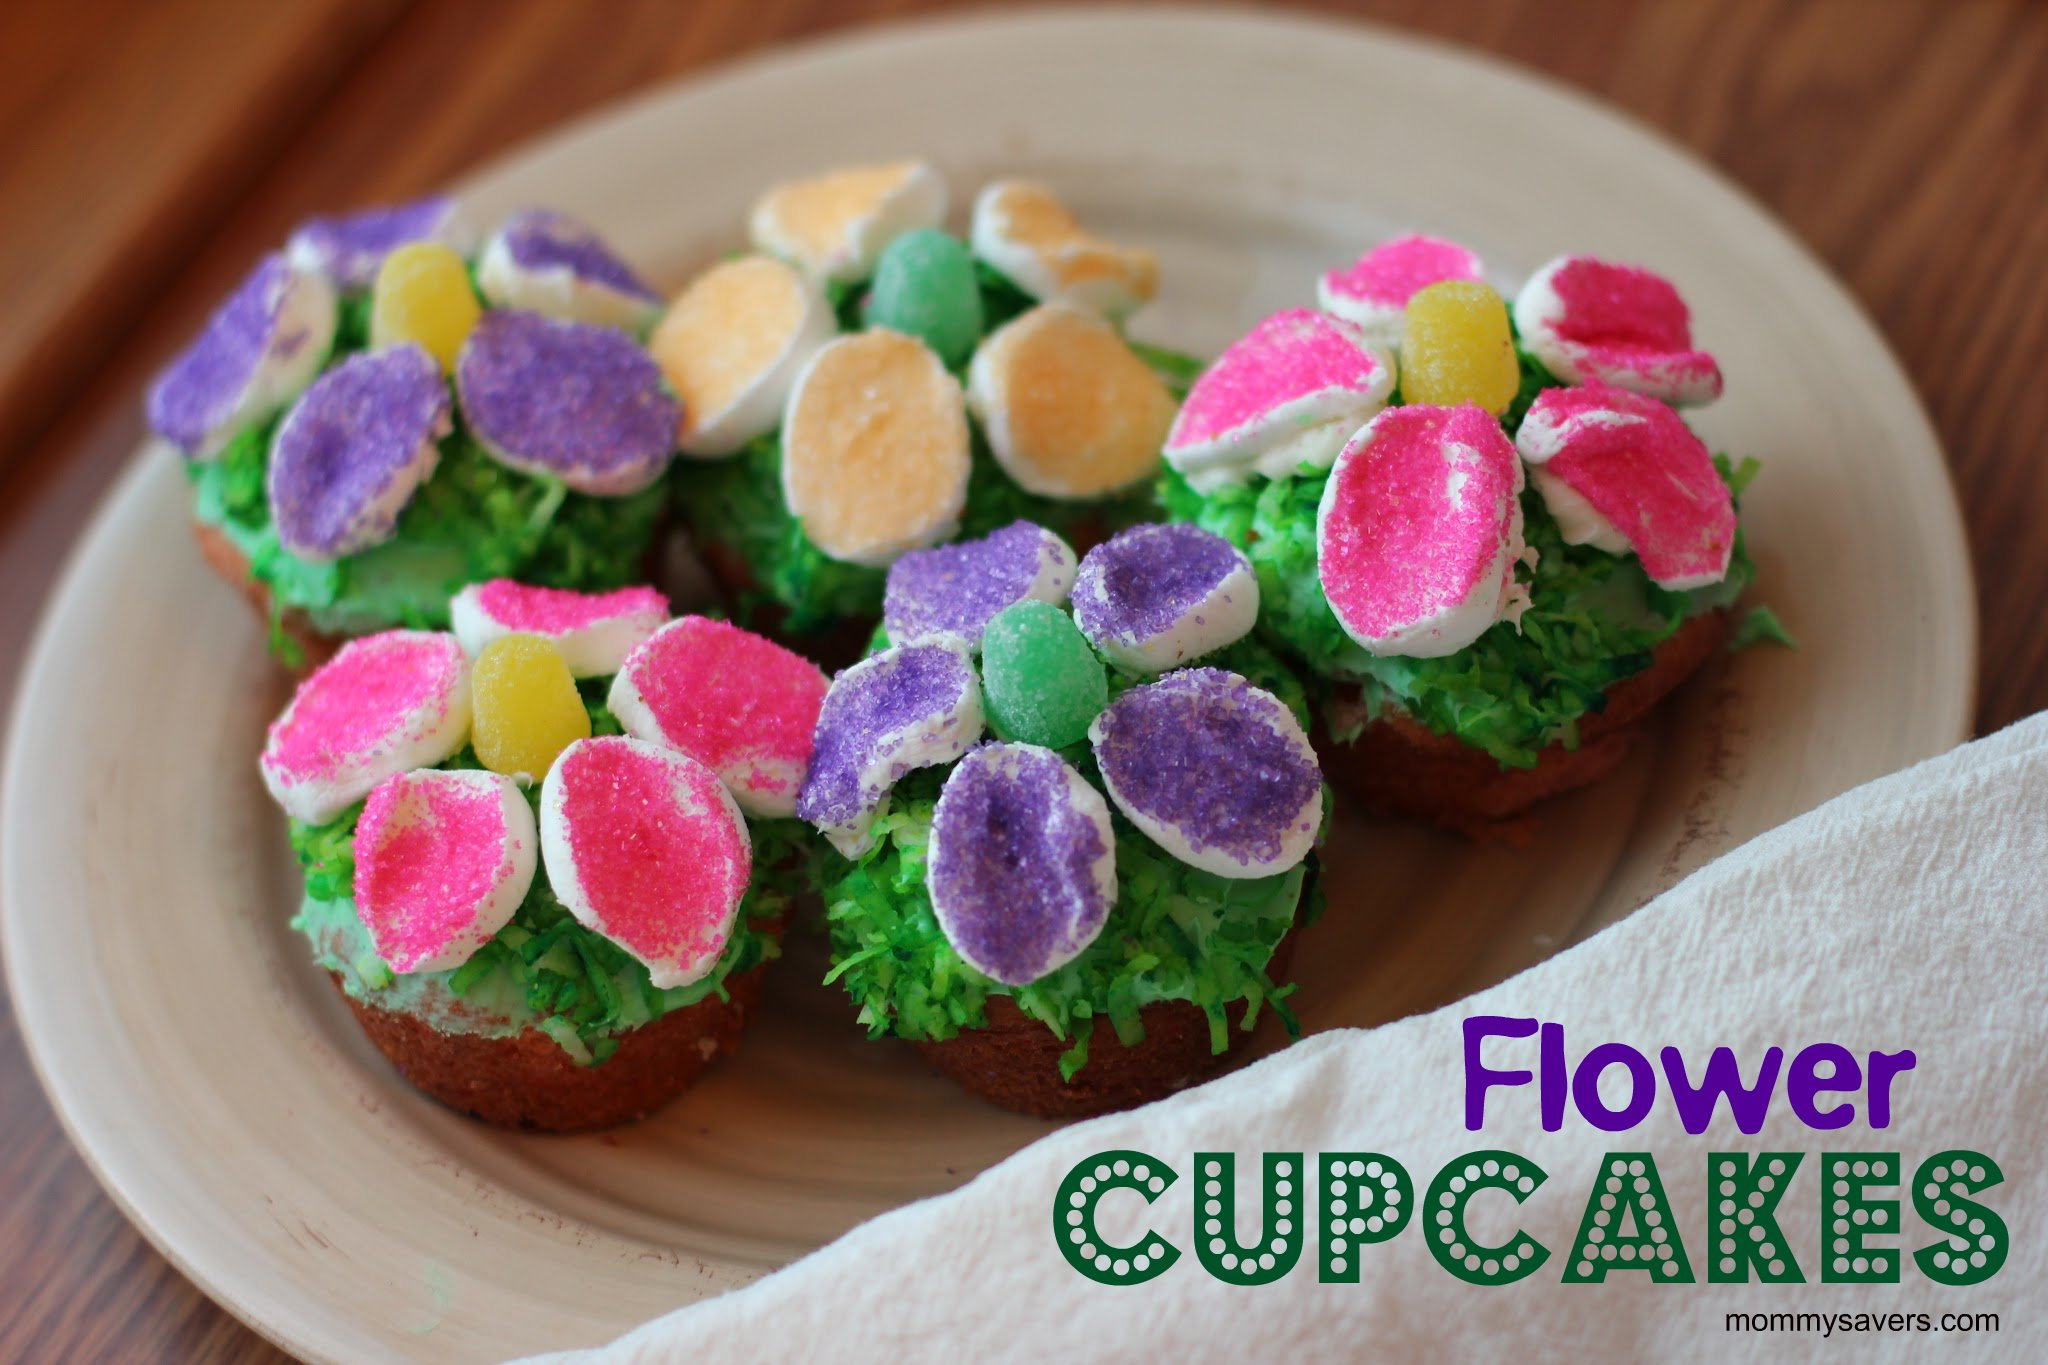 Cooking with Kids Flower Cupcakes